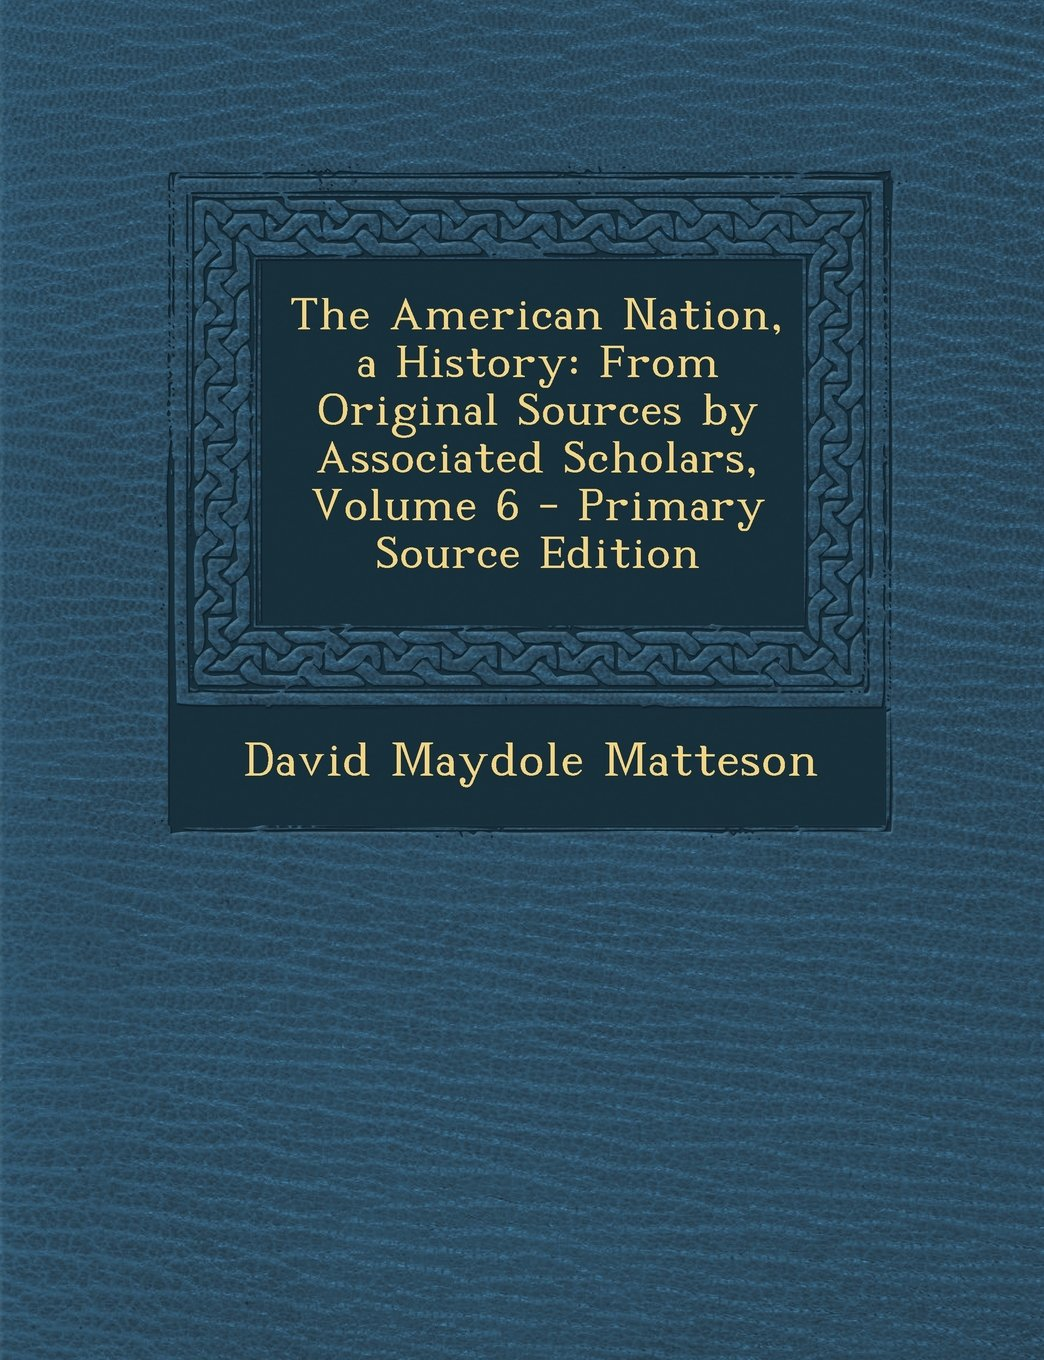 The American Nation, a History: From Original Sources by Associated Scholars, Volume 6 - Primary Source Edition pdf